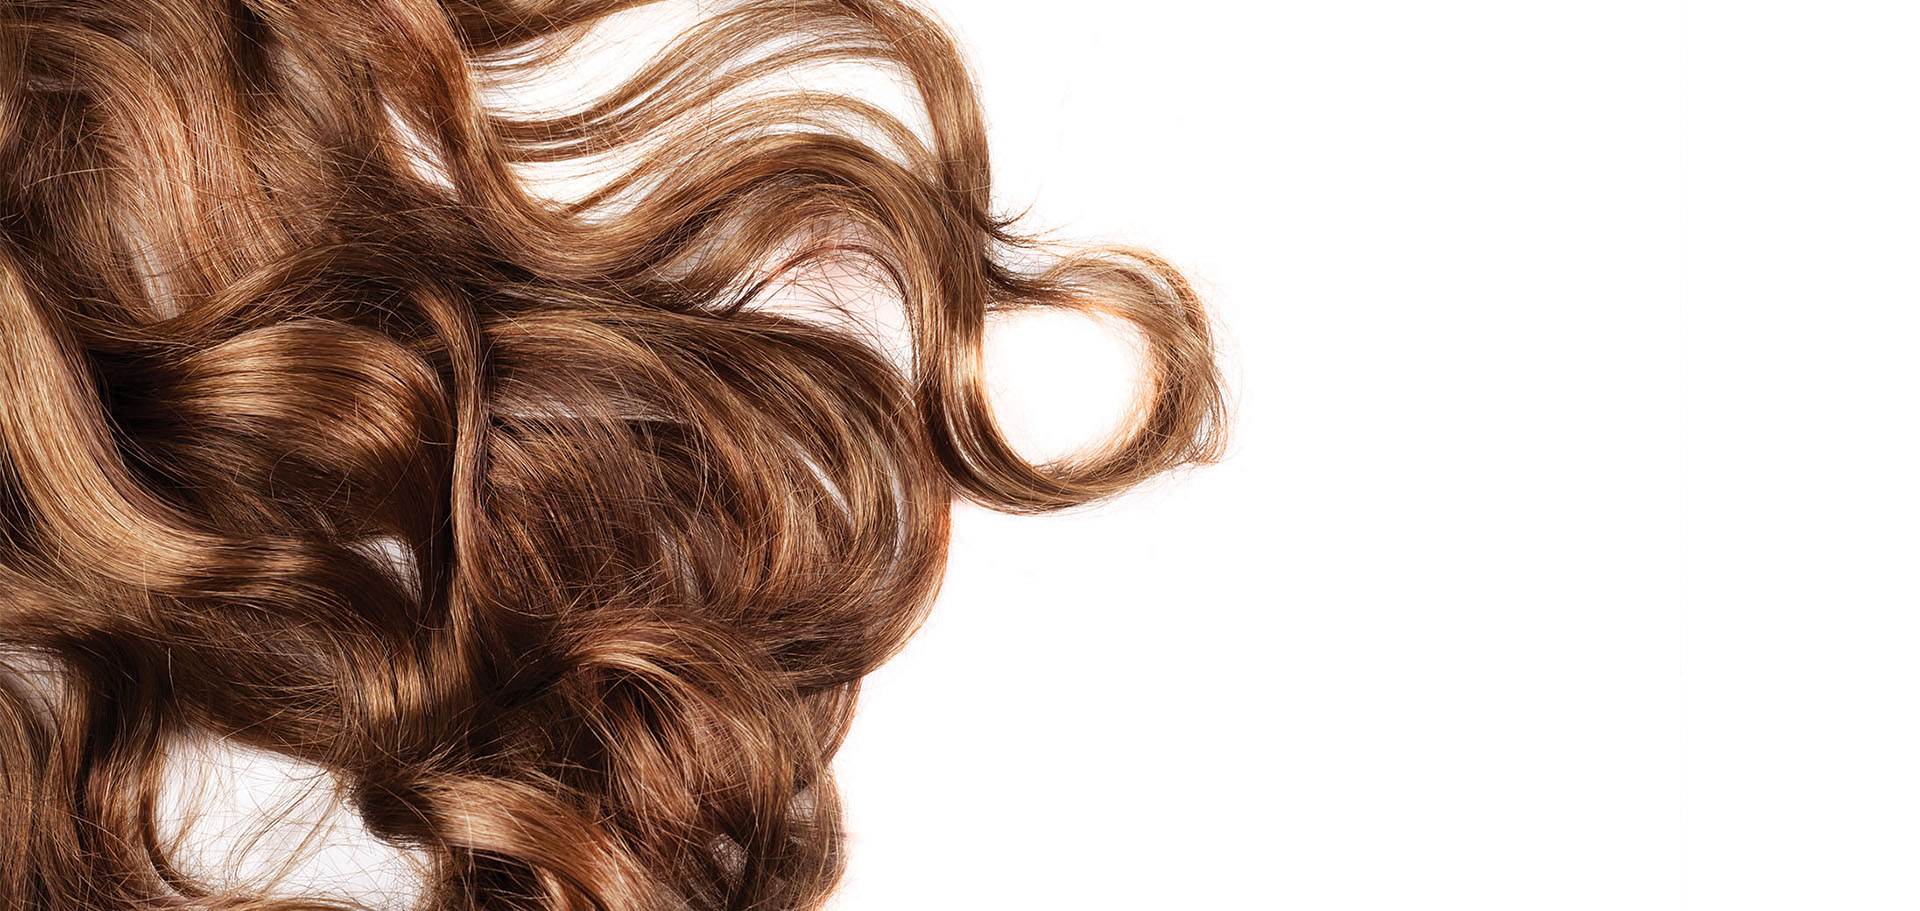 Have you ever wondered ,where the Hair of your Extensions are actually from… I can give you quick inside view